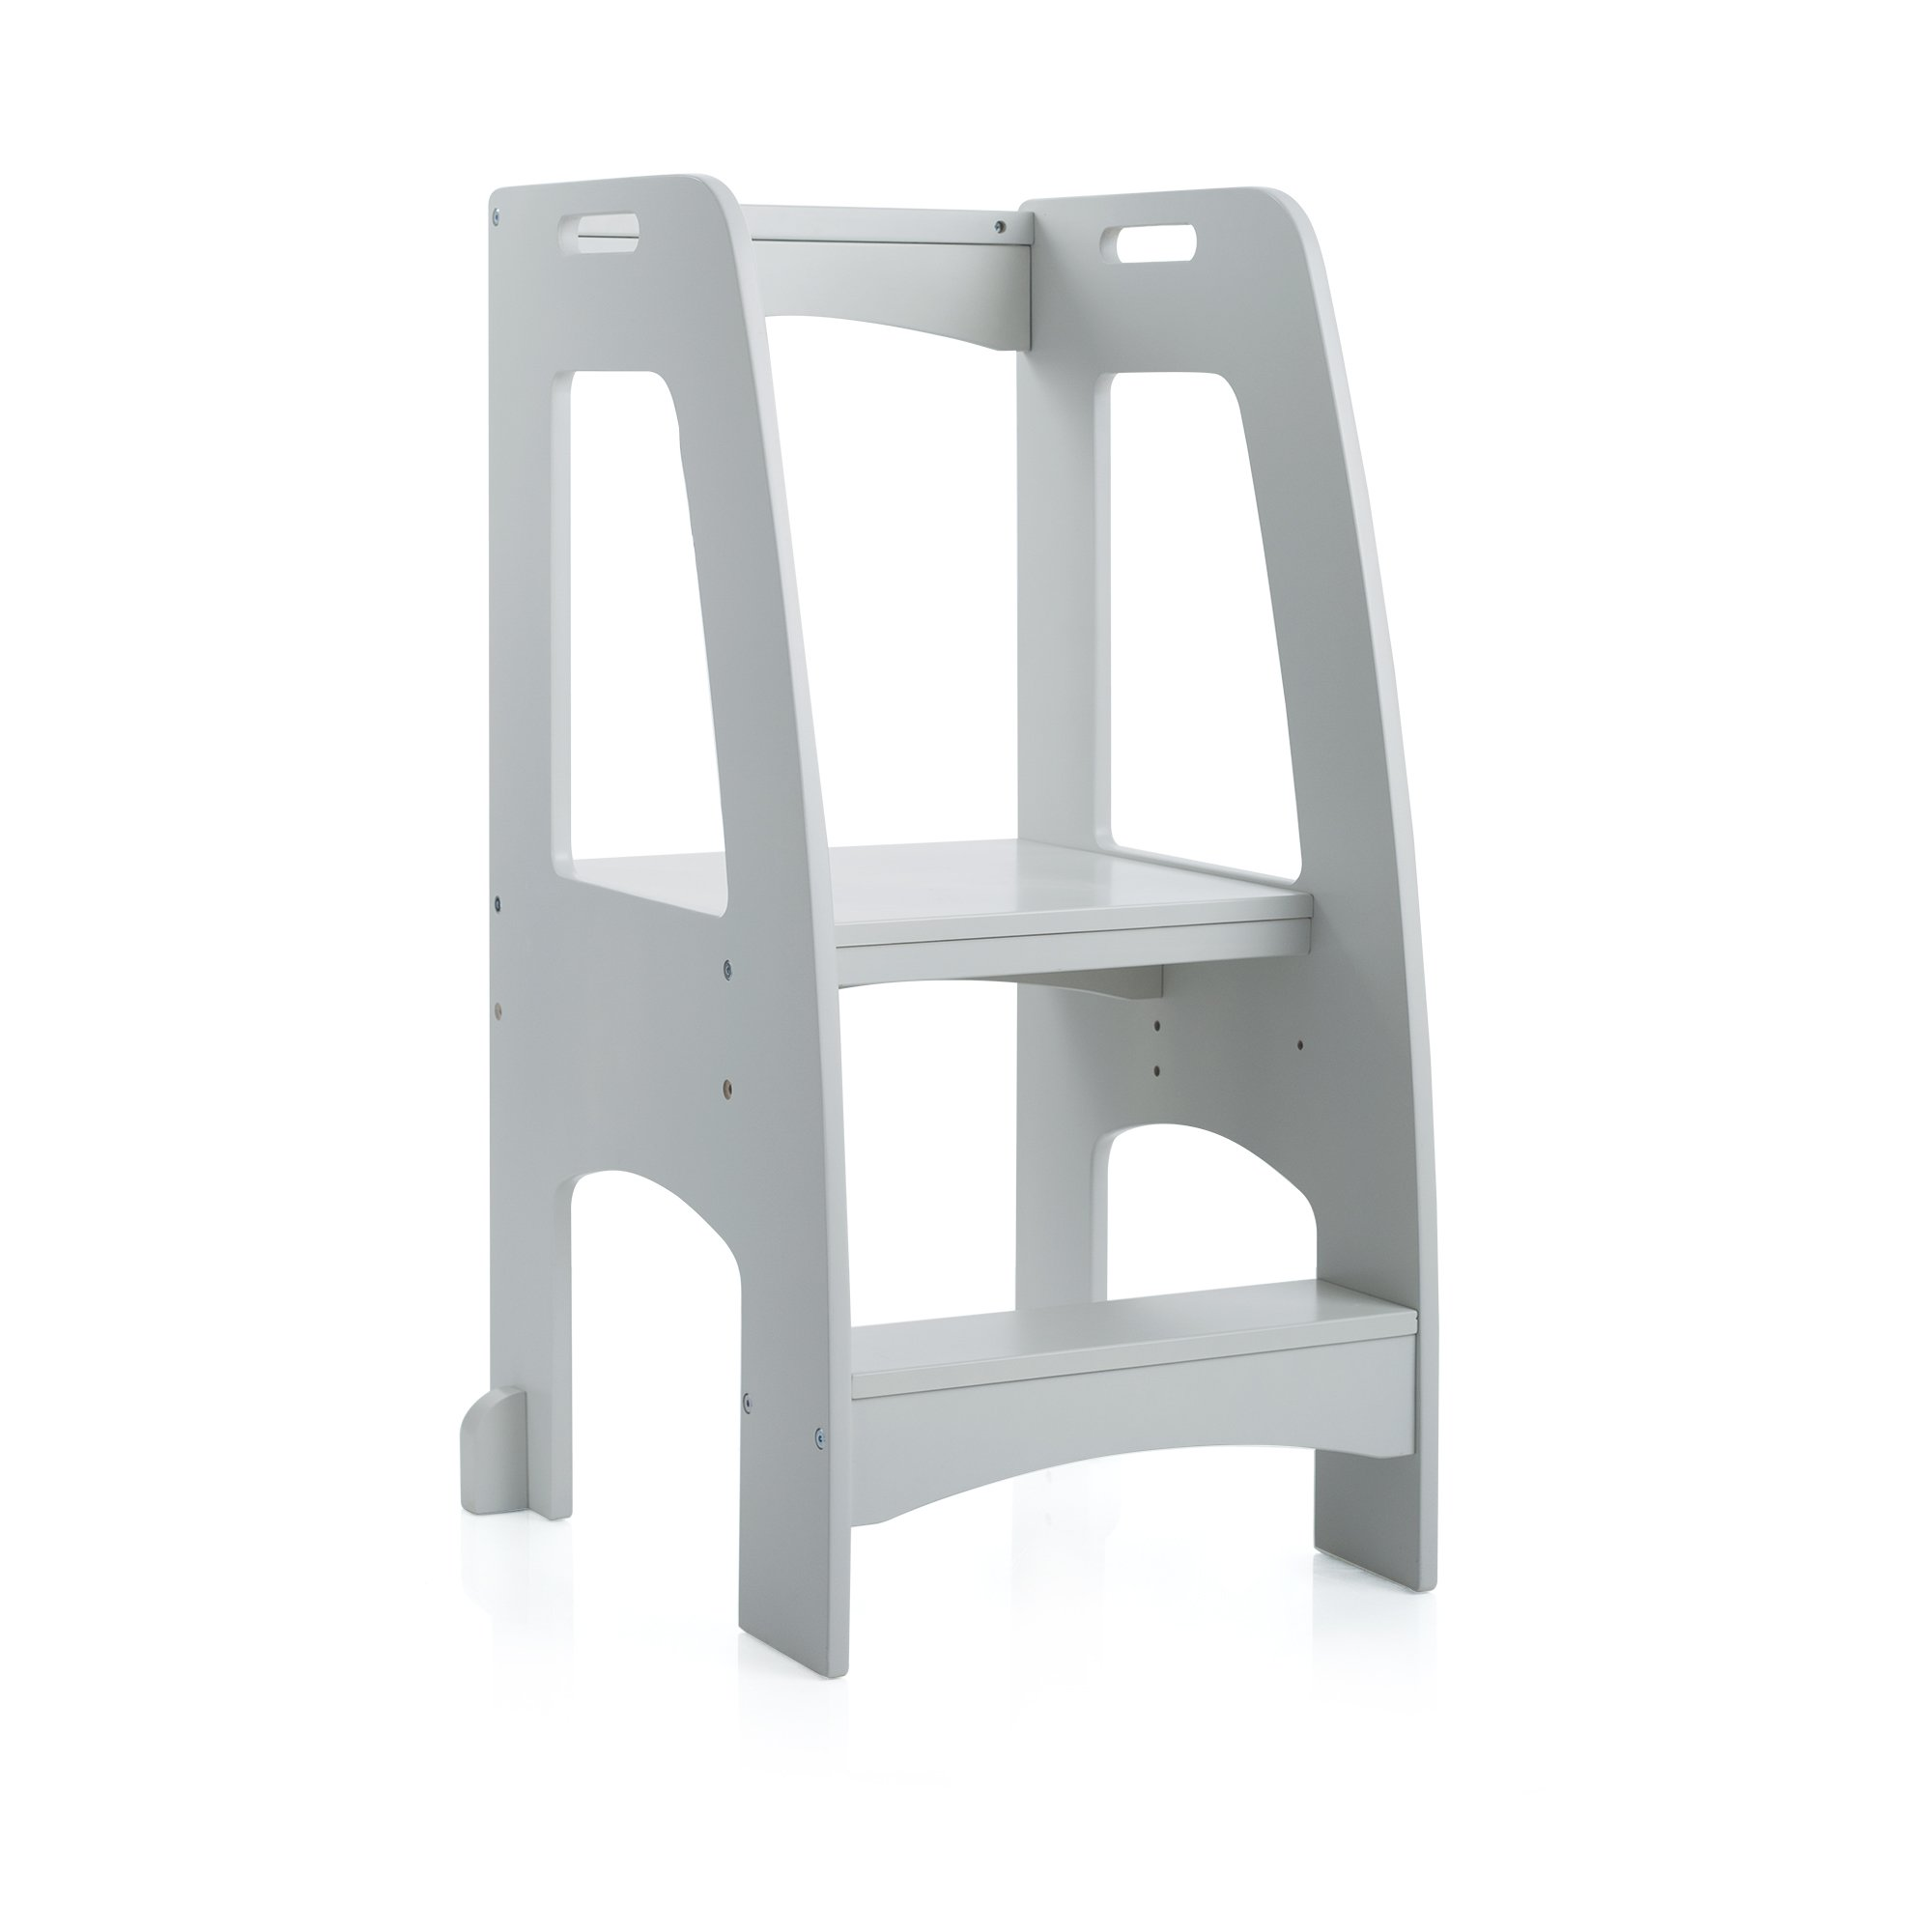 Guidecraft Kitchen Helper Tower Step-Up - Gray: Kids' Wooden, Adjustable Counter Height, Step Stool with Safety Handrails for Little Children - Toddler Furniture by Guidecraft